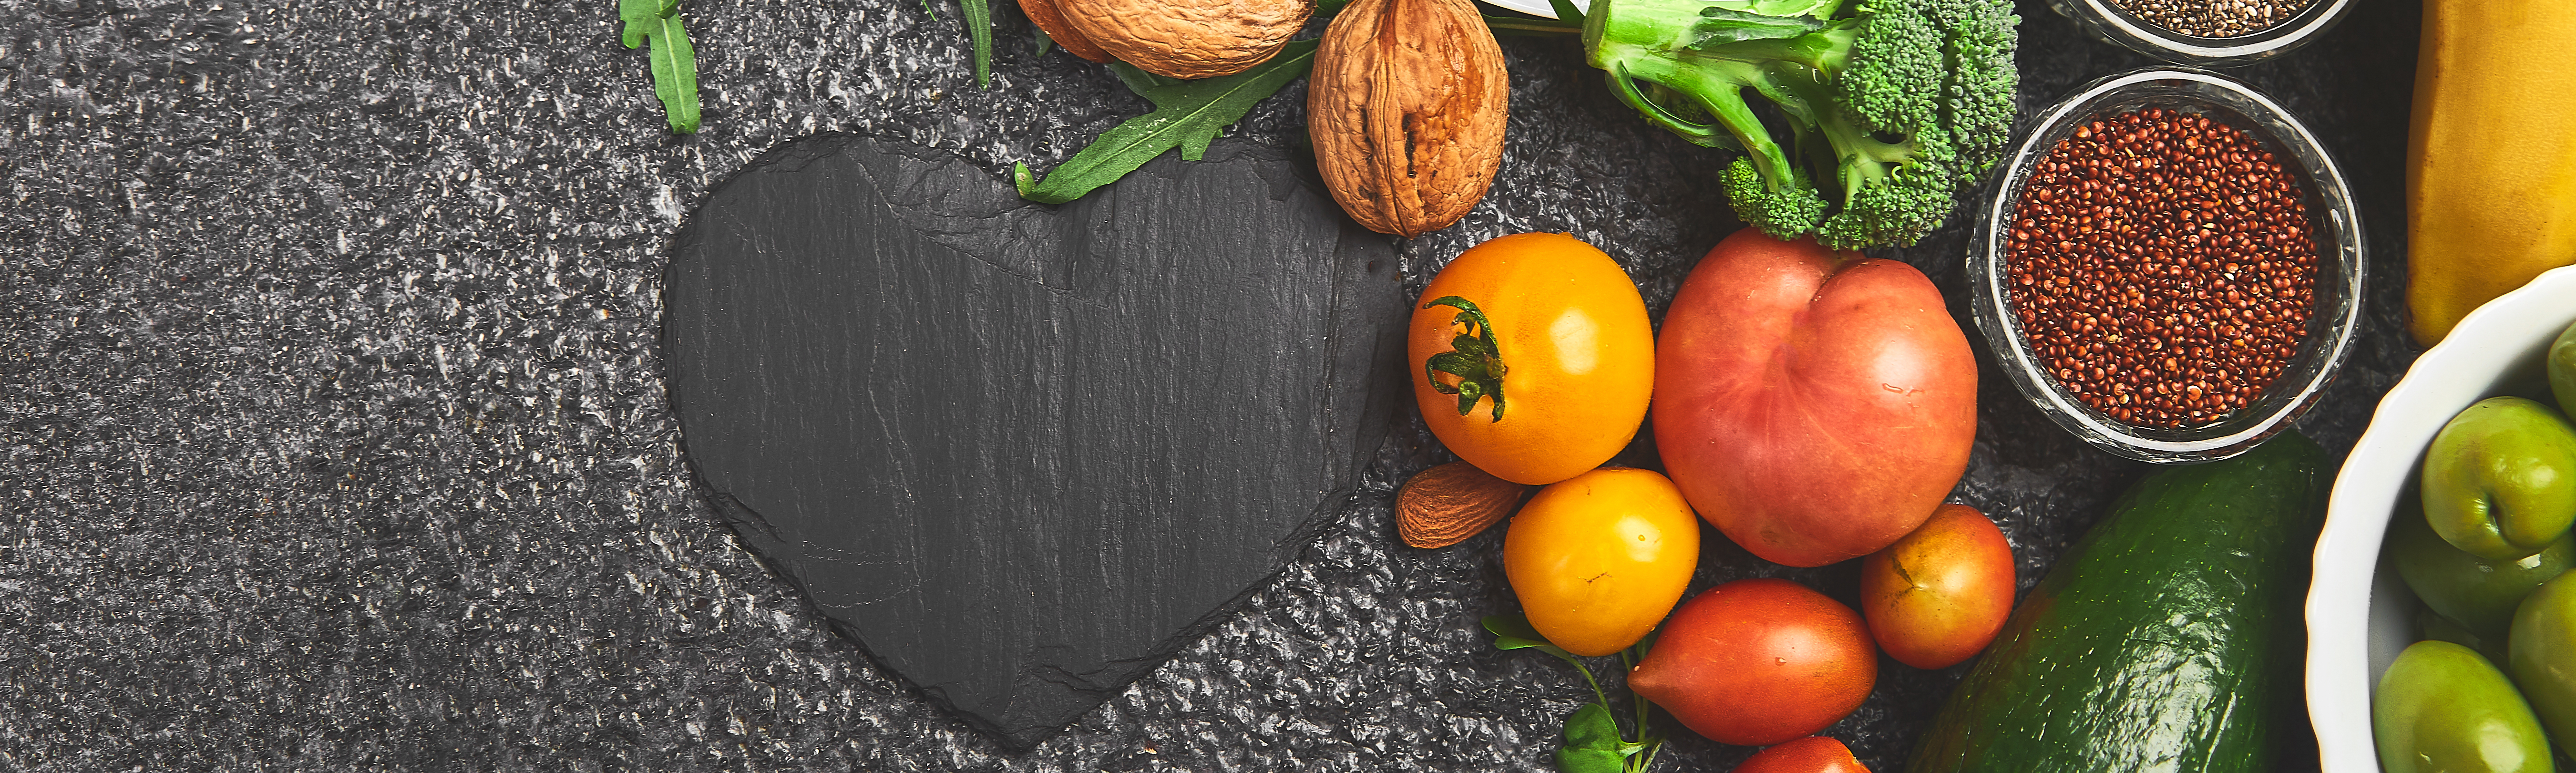 Diet is an important part of heart health